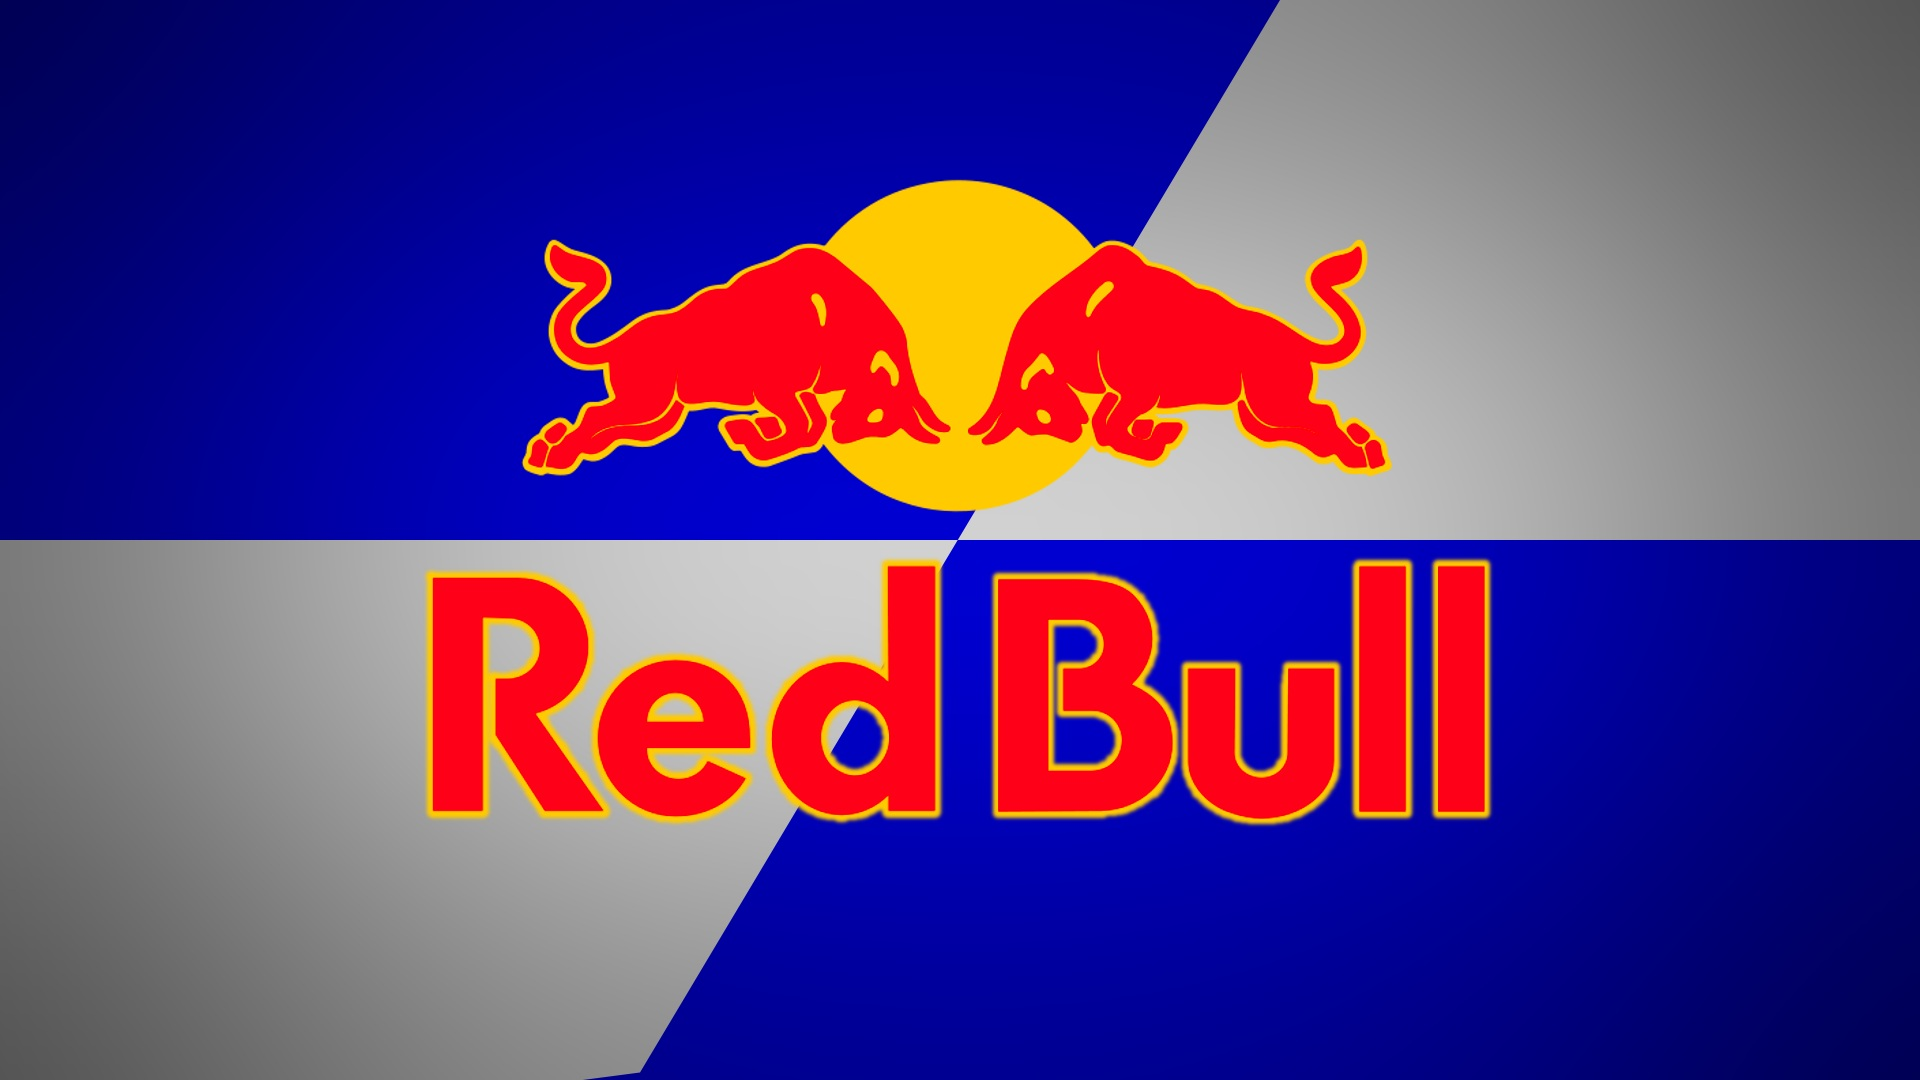 Red Bull Skydive >> You can count on Red Bull giving you wings – and a conversation - Outwrite PR